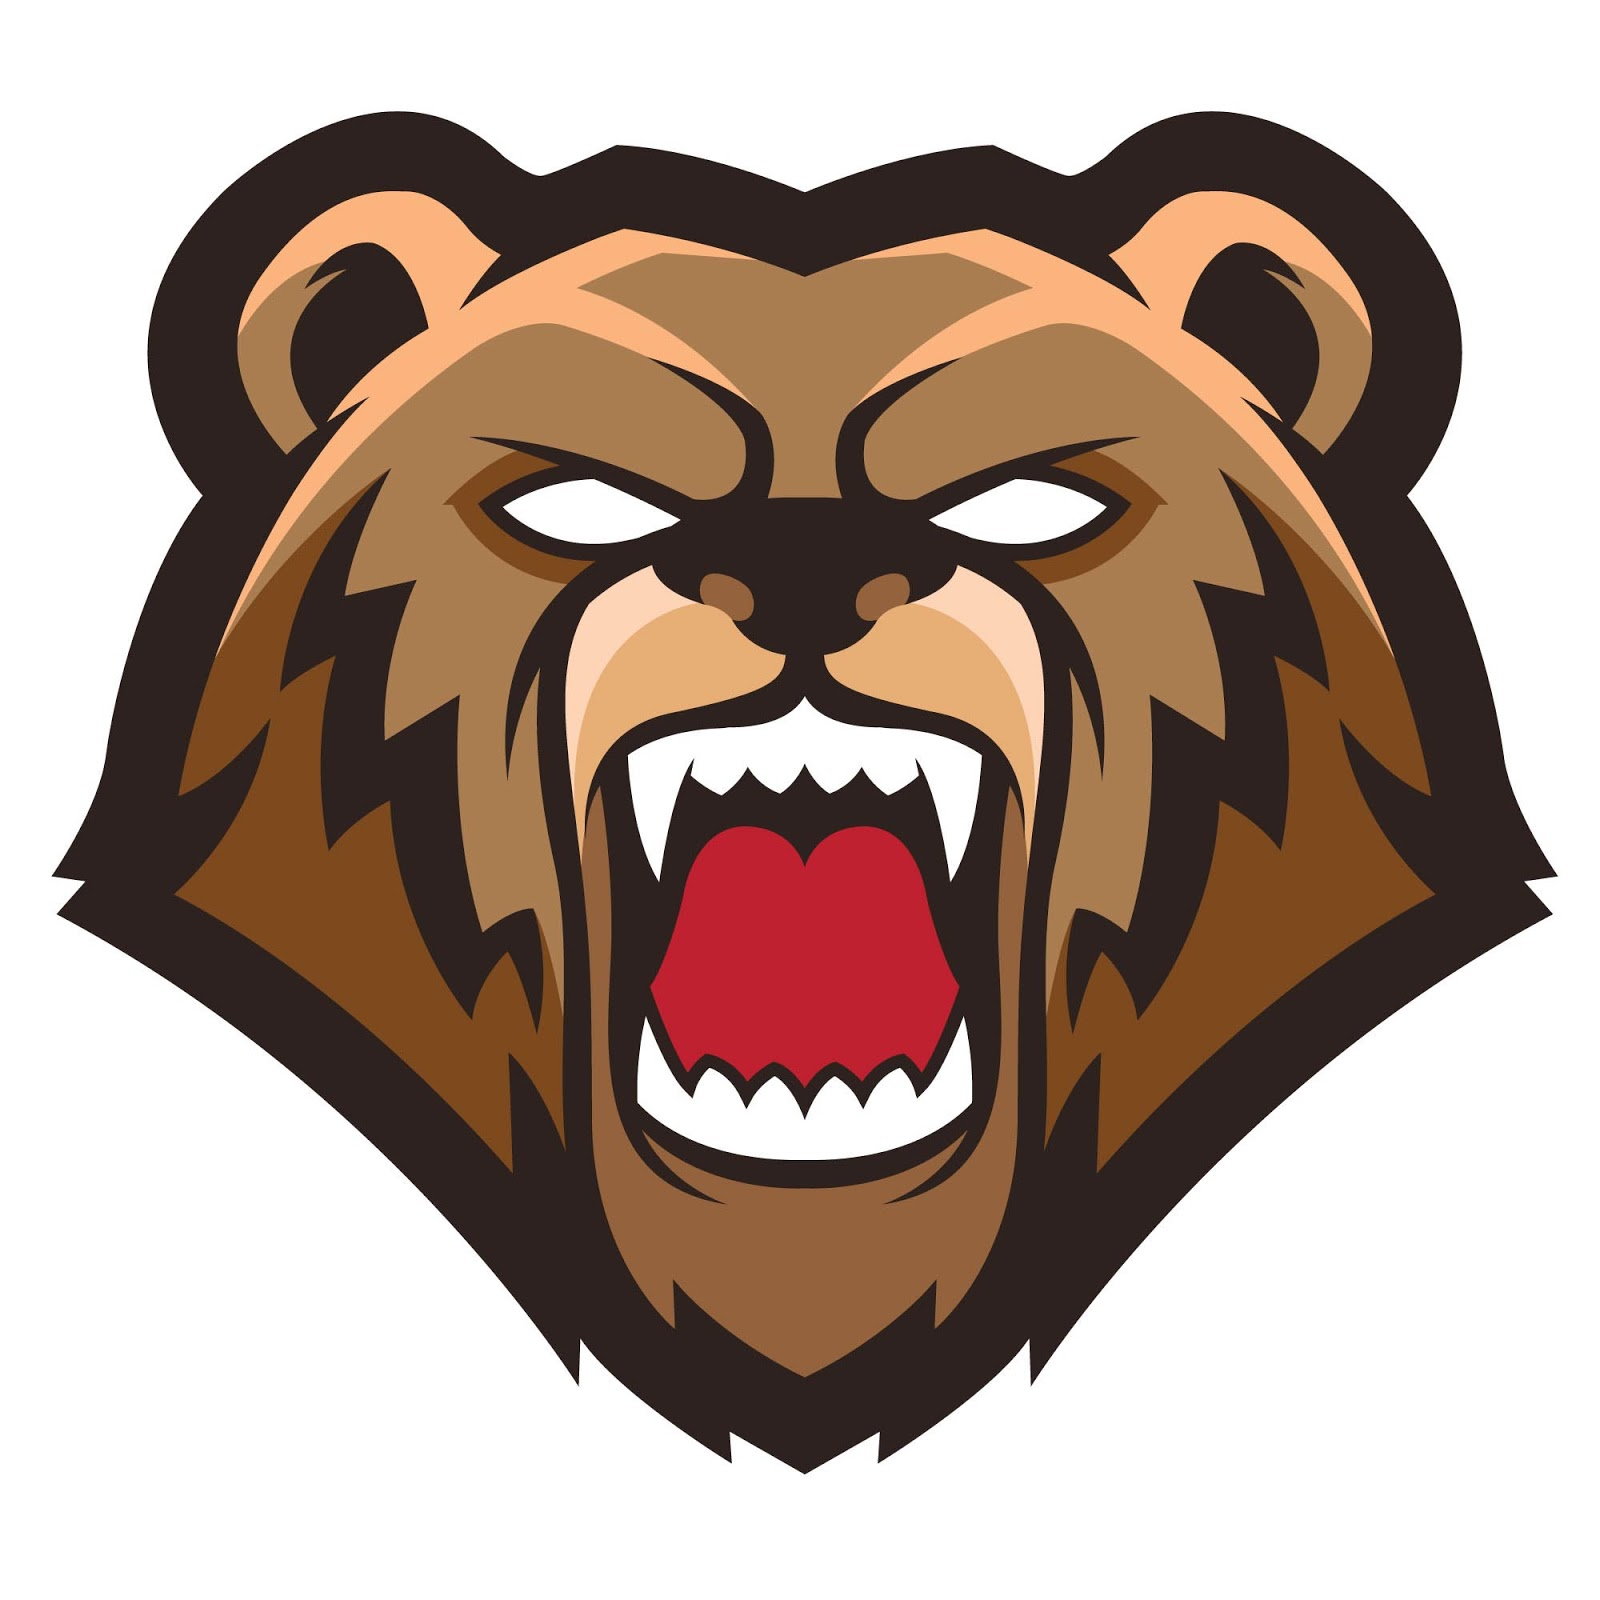 Bear Logo Free Download Vector CDR, AI, EPS and PNG Formats